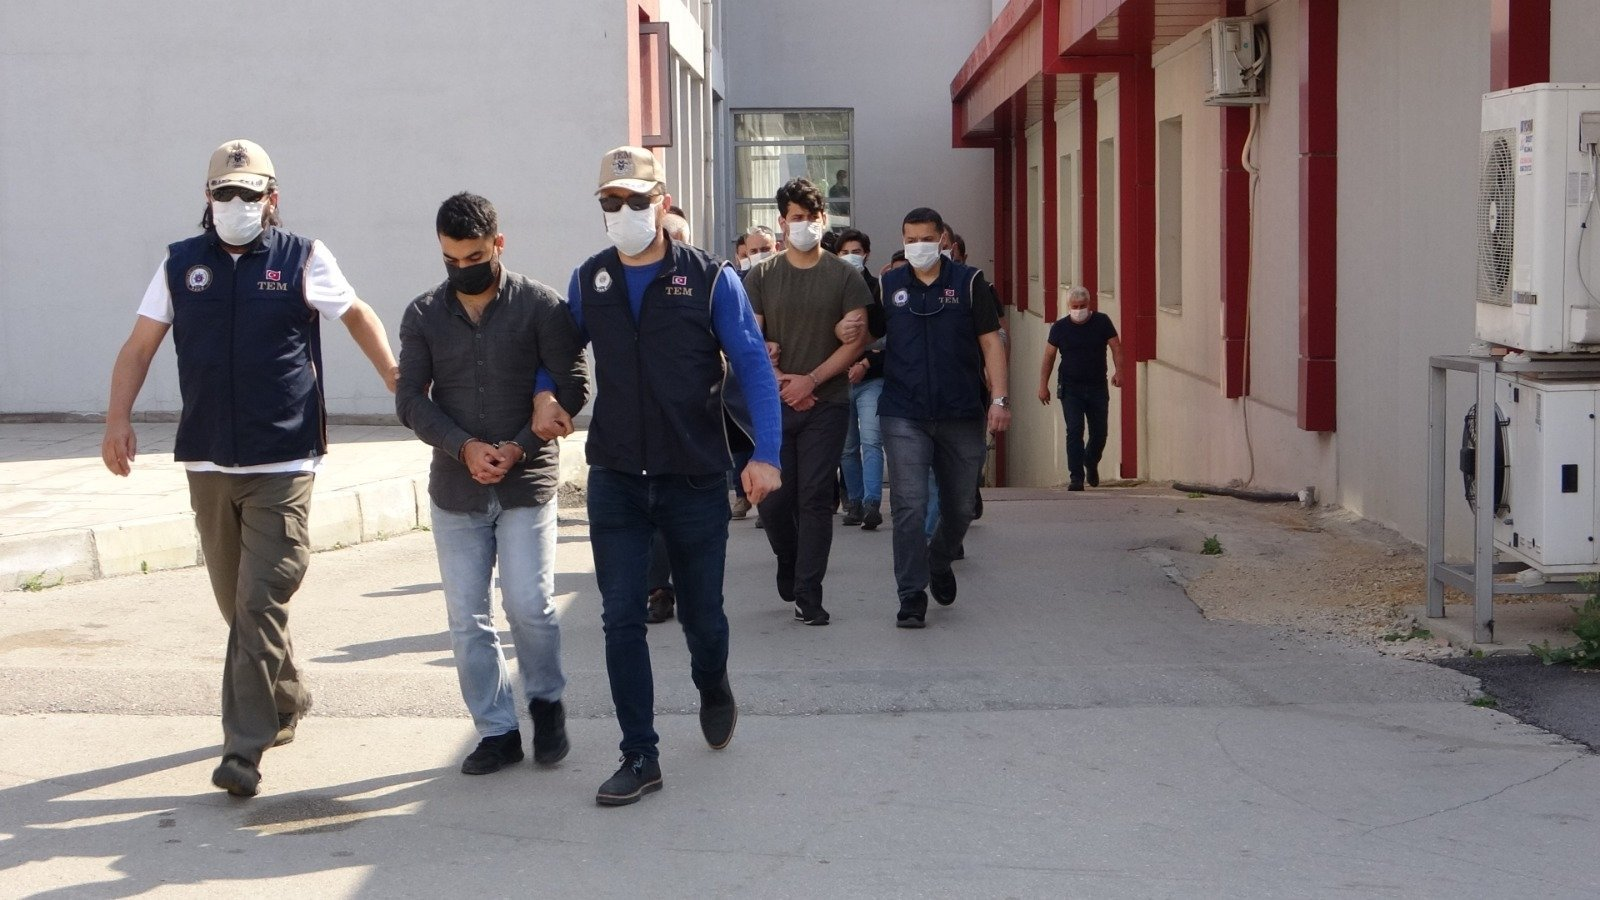 Police escort suspects captured in southern Adana province, Turkey, April 26, 2021. (DHA PHOTO)